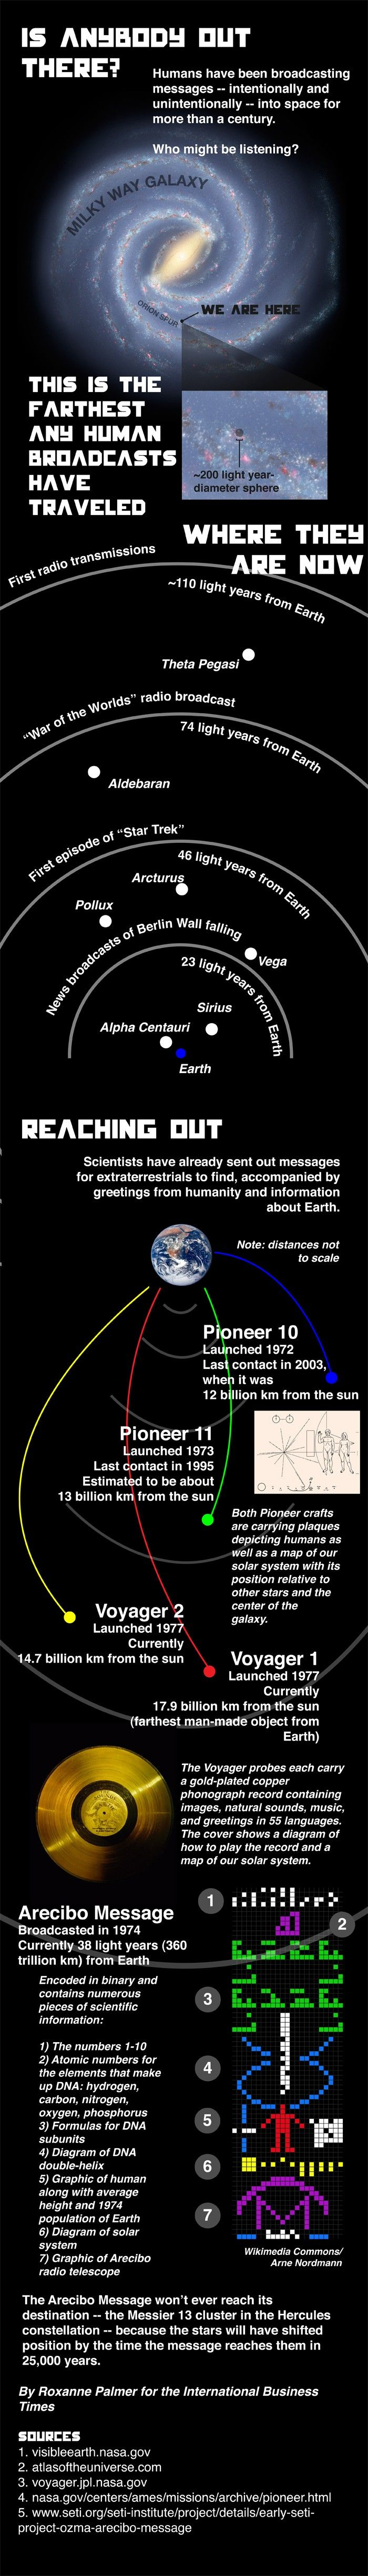 Is anybody out there? Infographic.